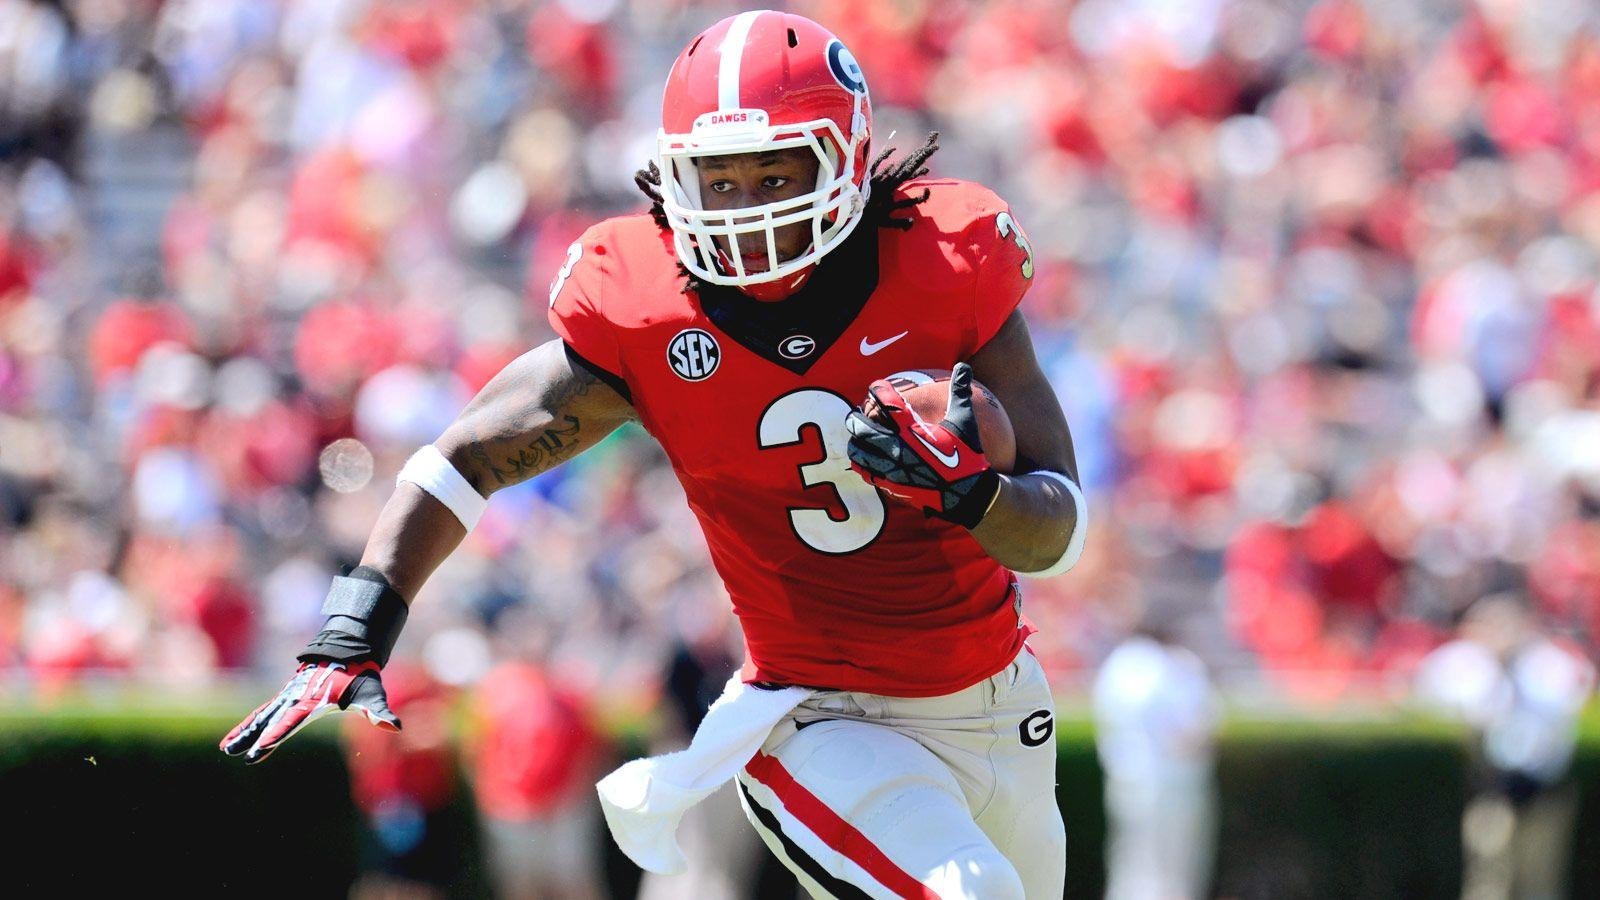 Backgrounds For Todd Gurley Georgia Backgrounds